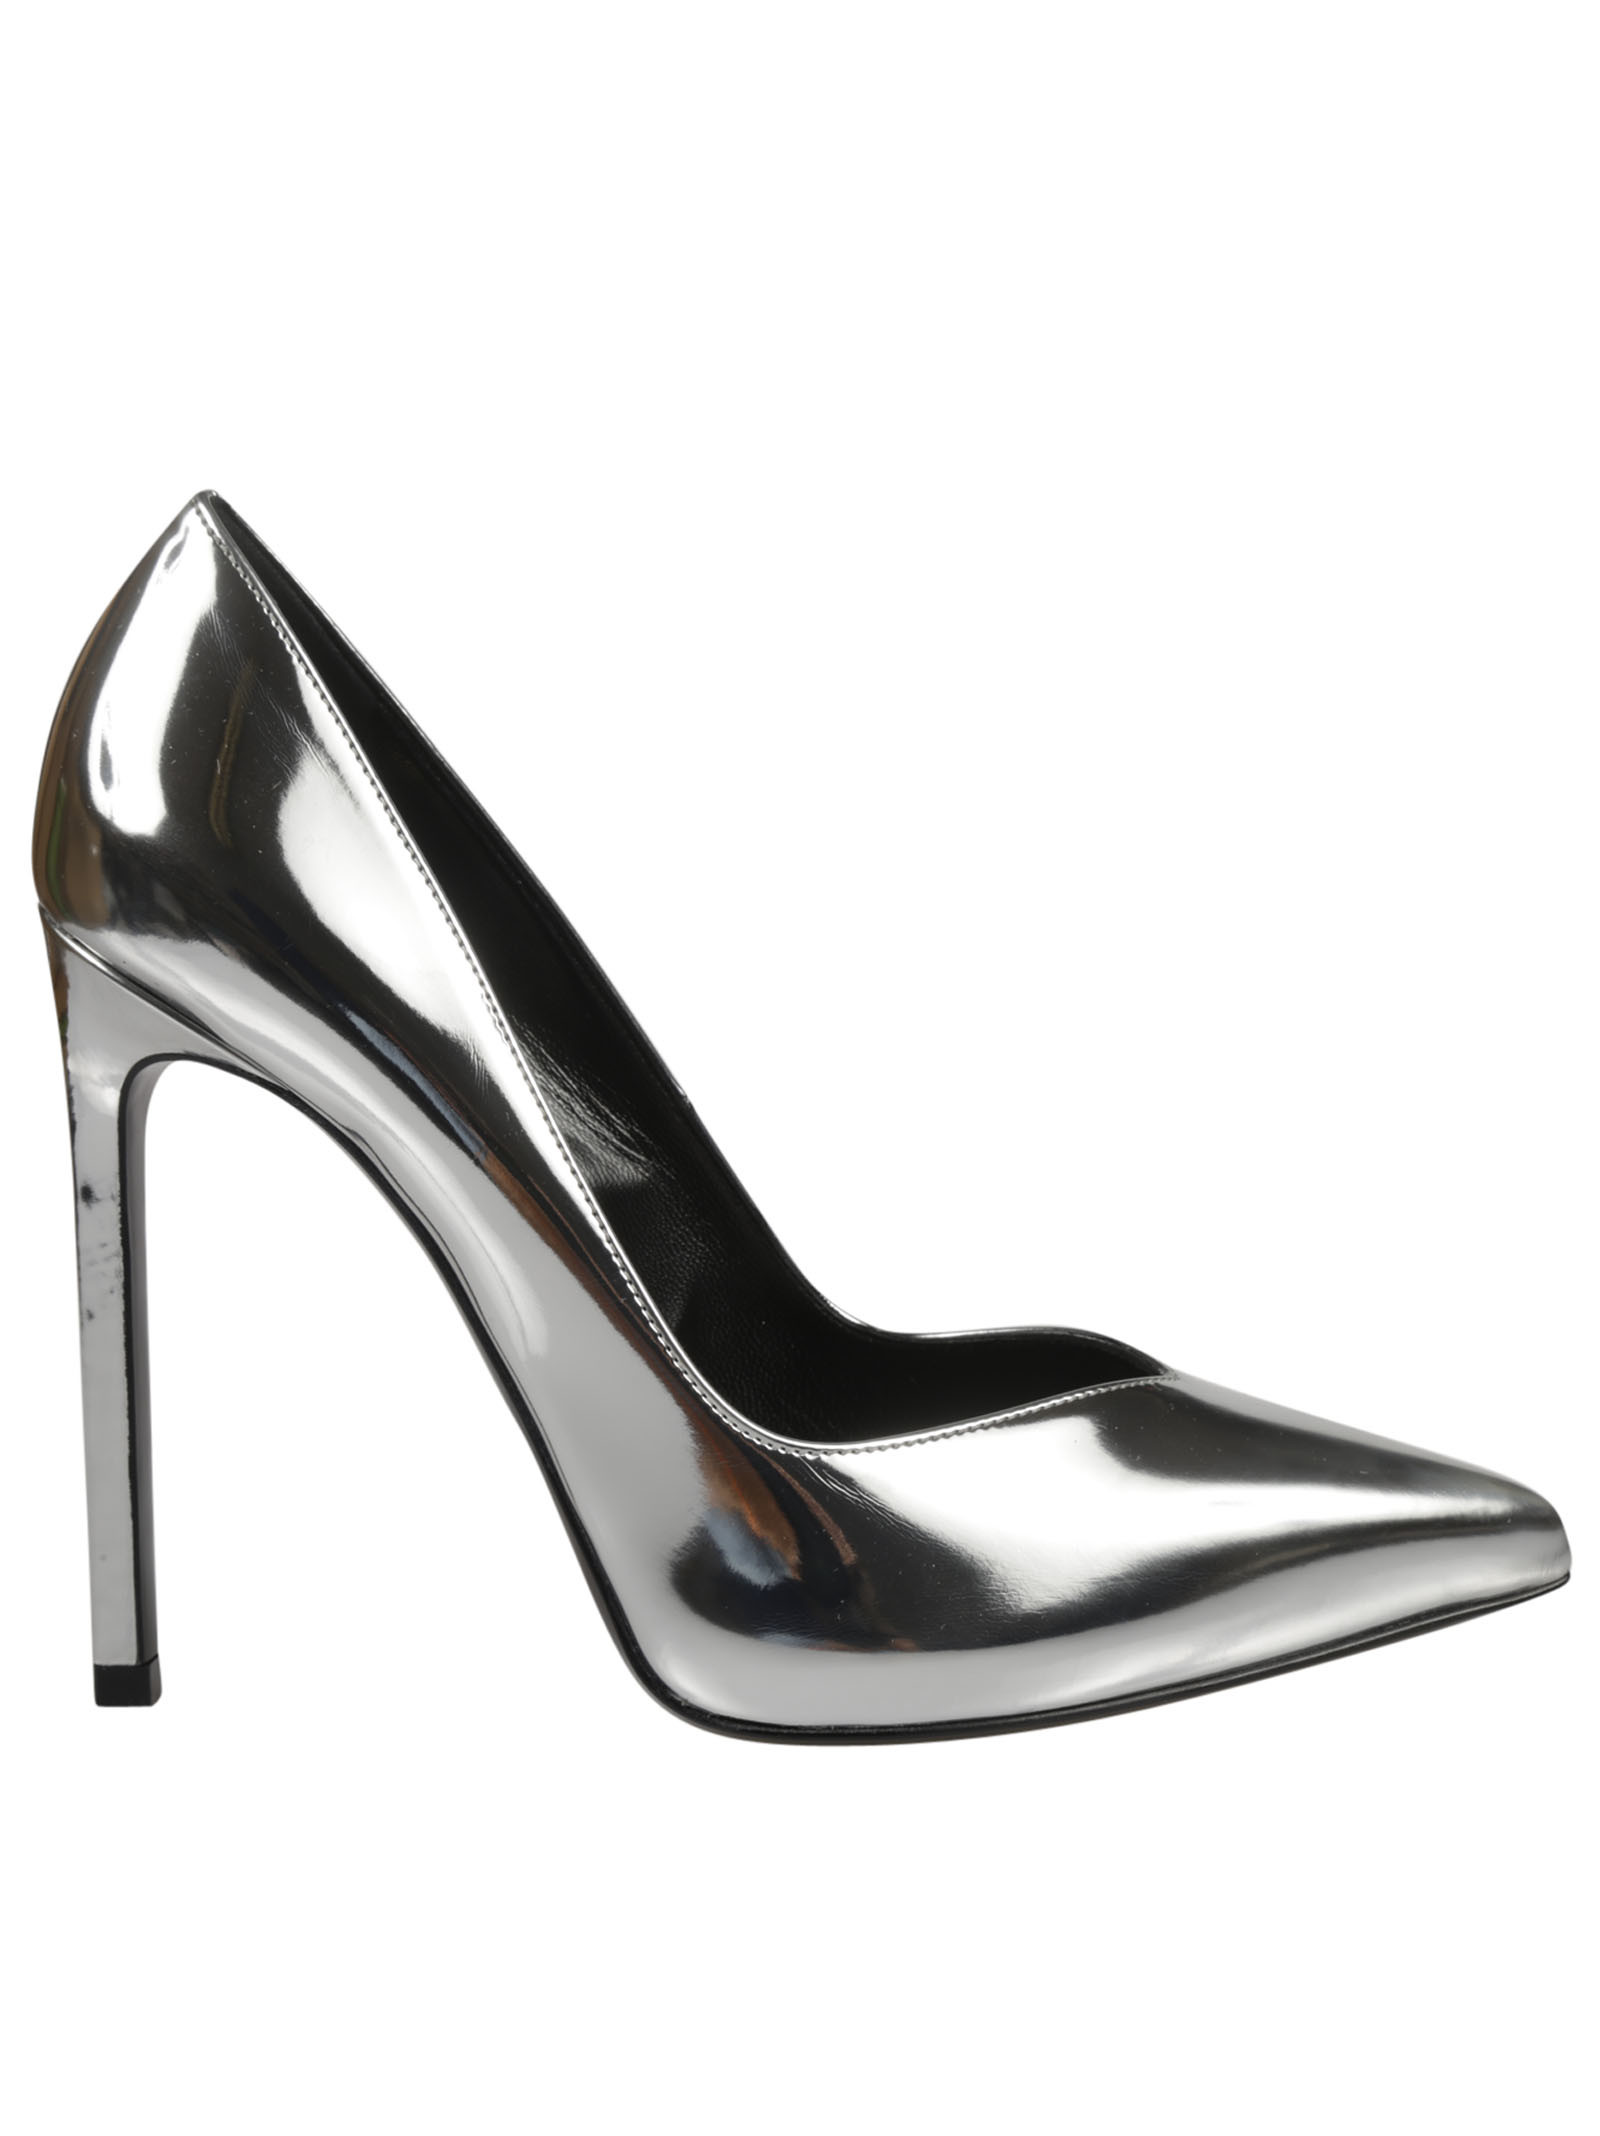 Saint Laurent Paris Pumps - Saint Laurent - Gentle